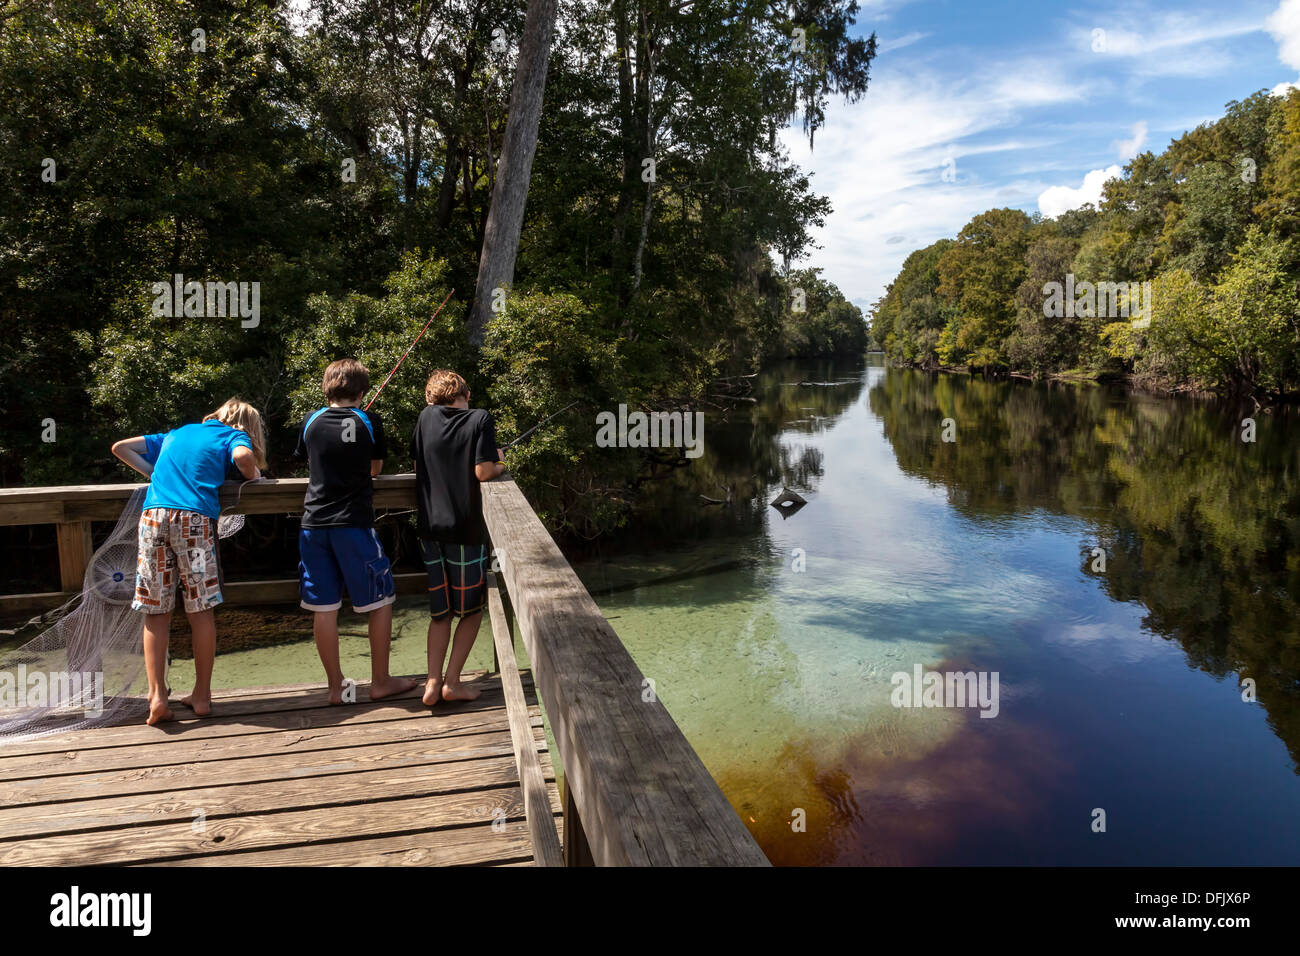 Three young boys fishing from dock where crystal clear spring water enters the Santa Fe river blackened by root tannins. - Stock Image